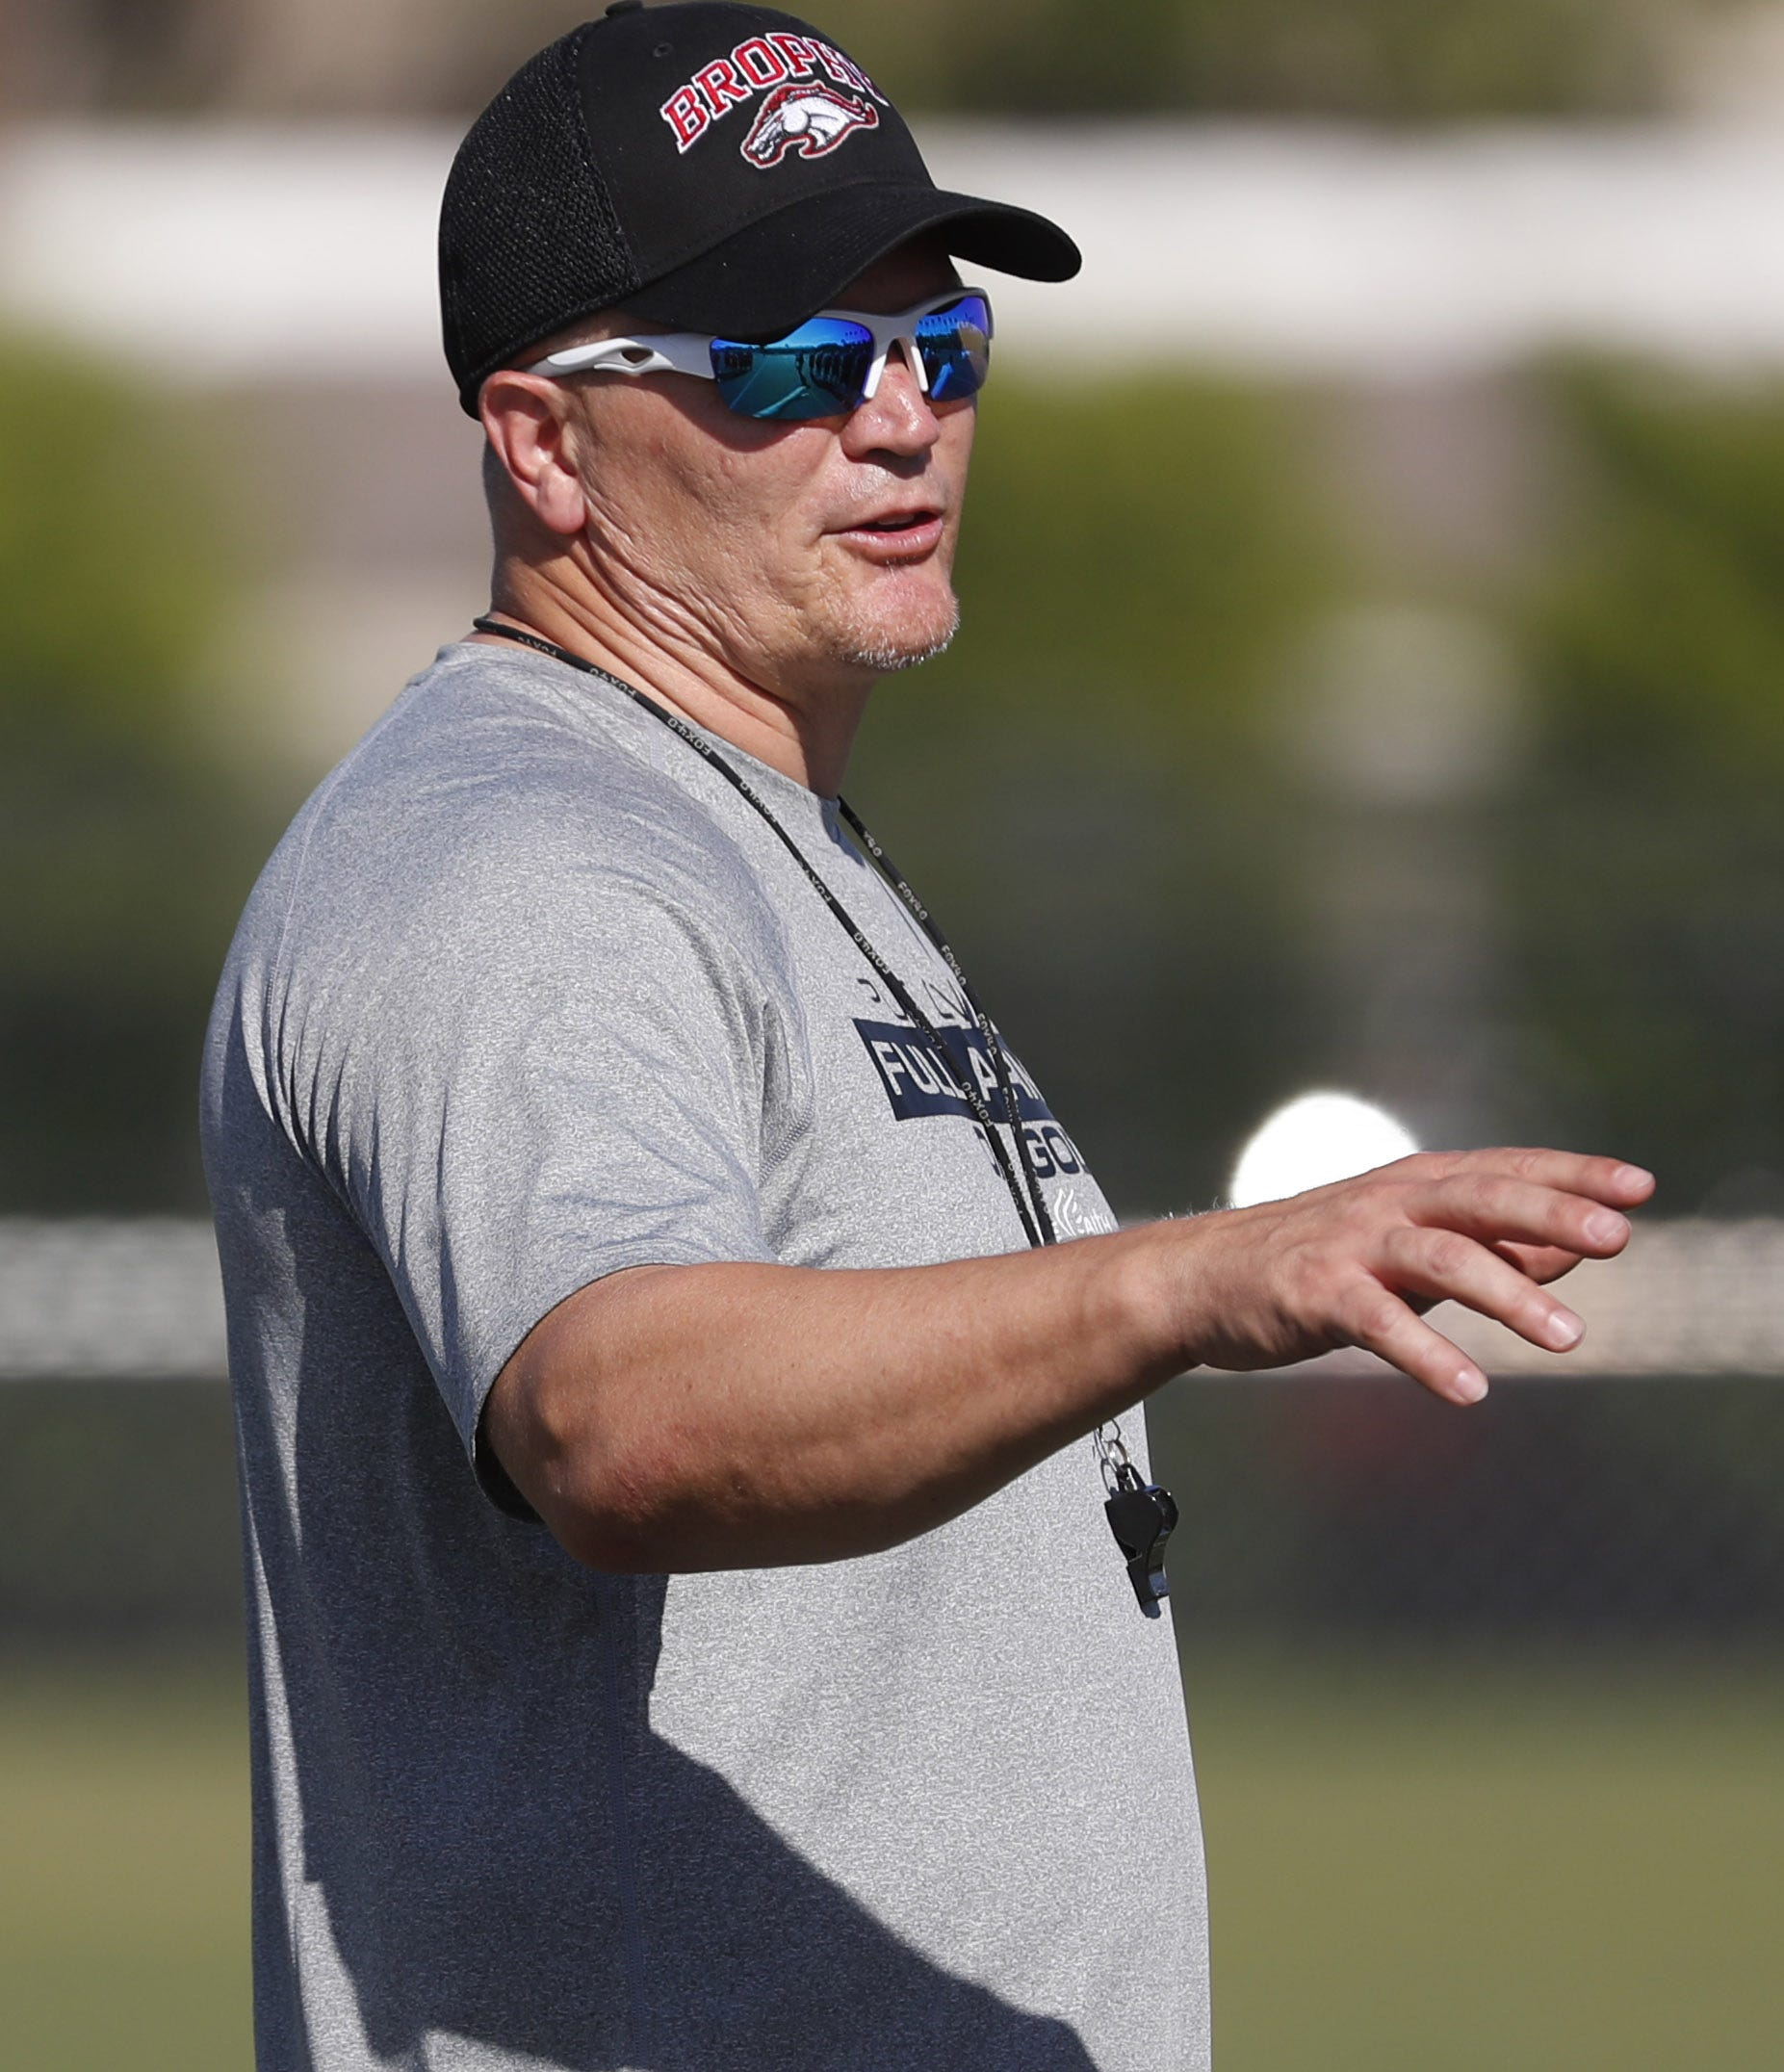 Brophy Prep coach Jon Kitna joins Mike Martz on Alliance of American Football's San Diego team